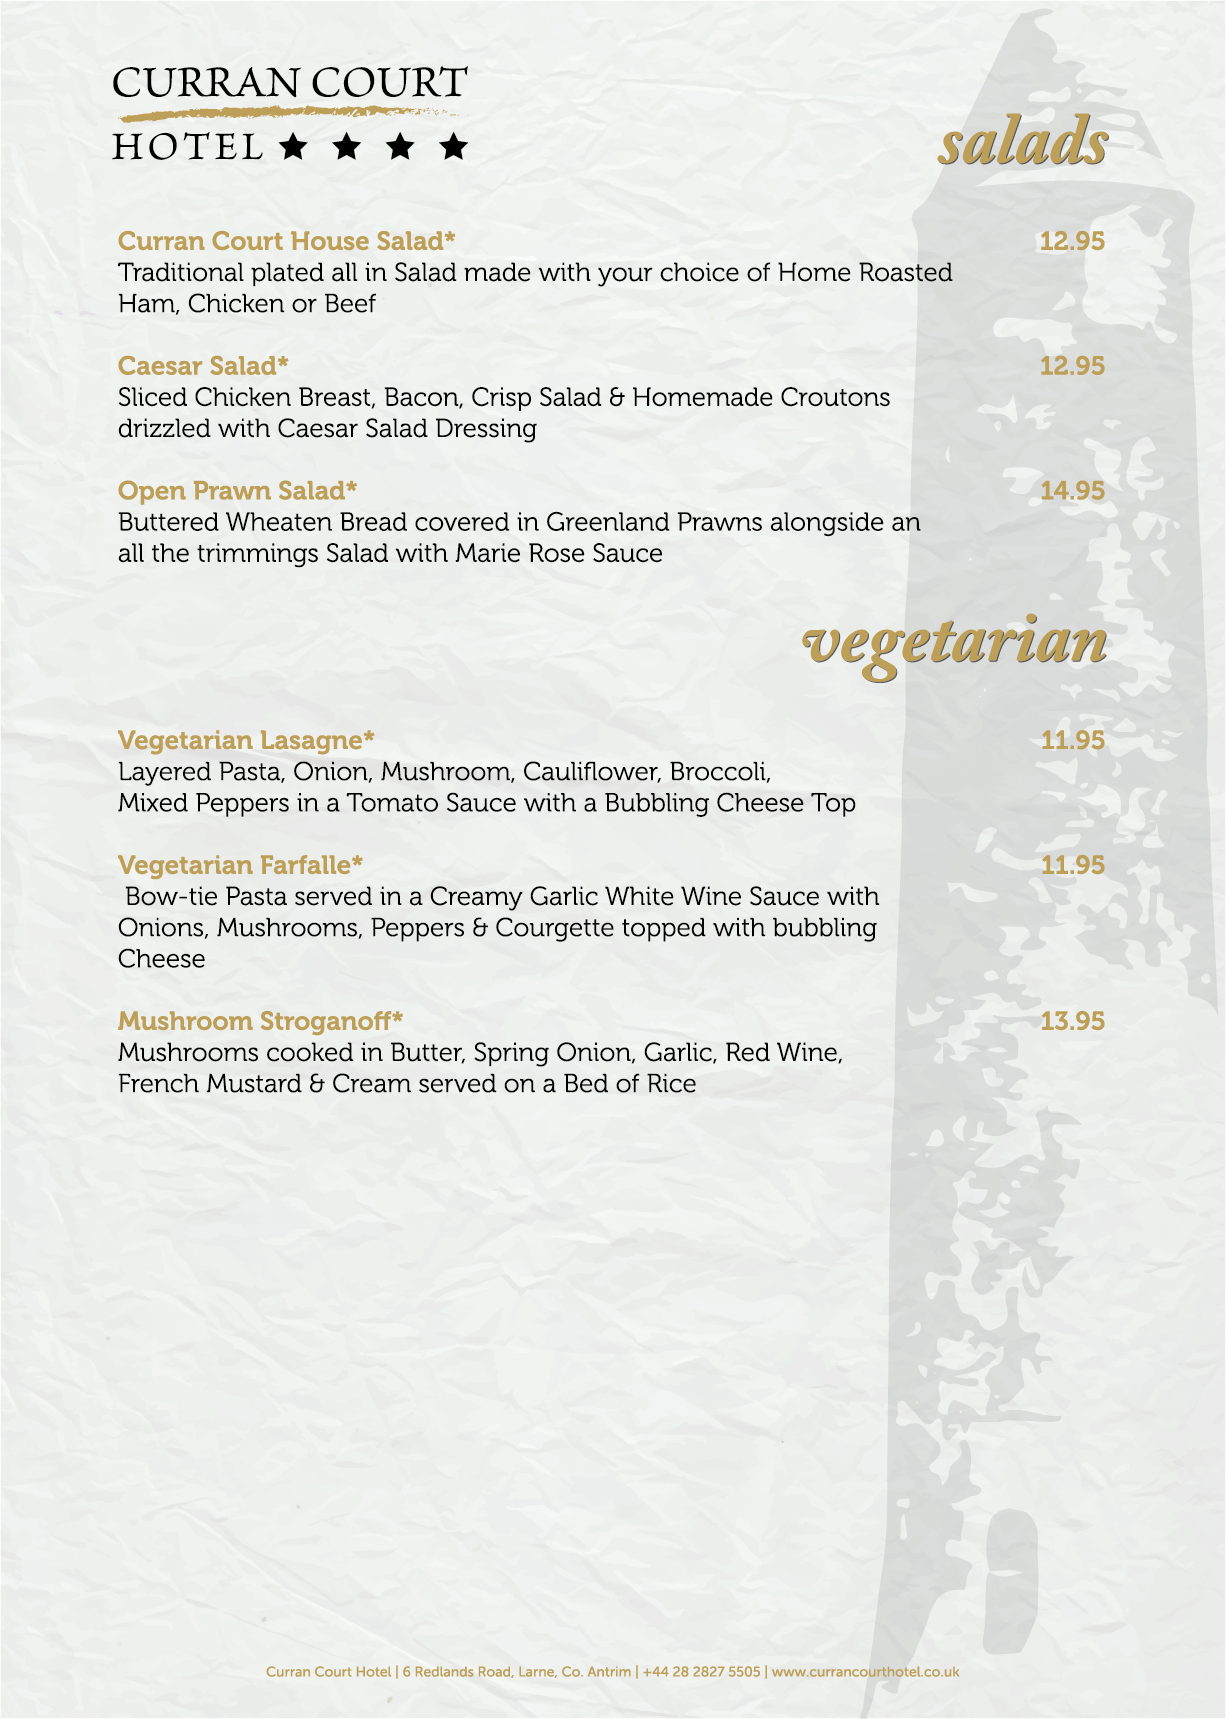 Curran Court Hotel | Evening Menu 6